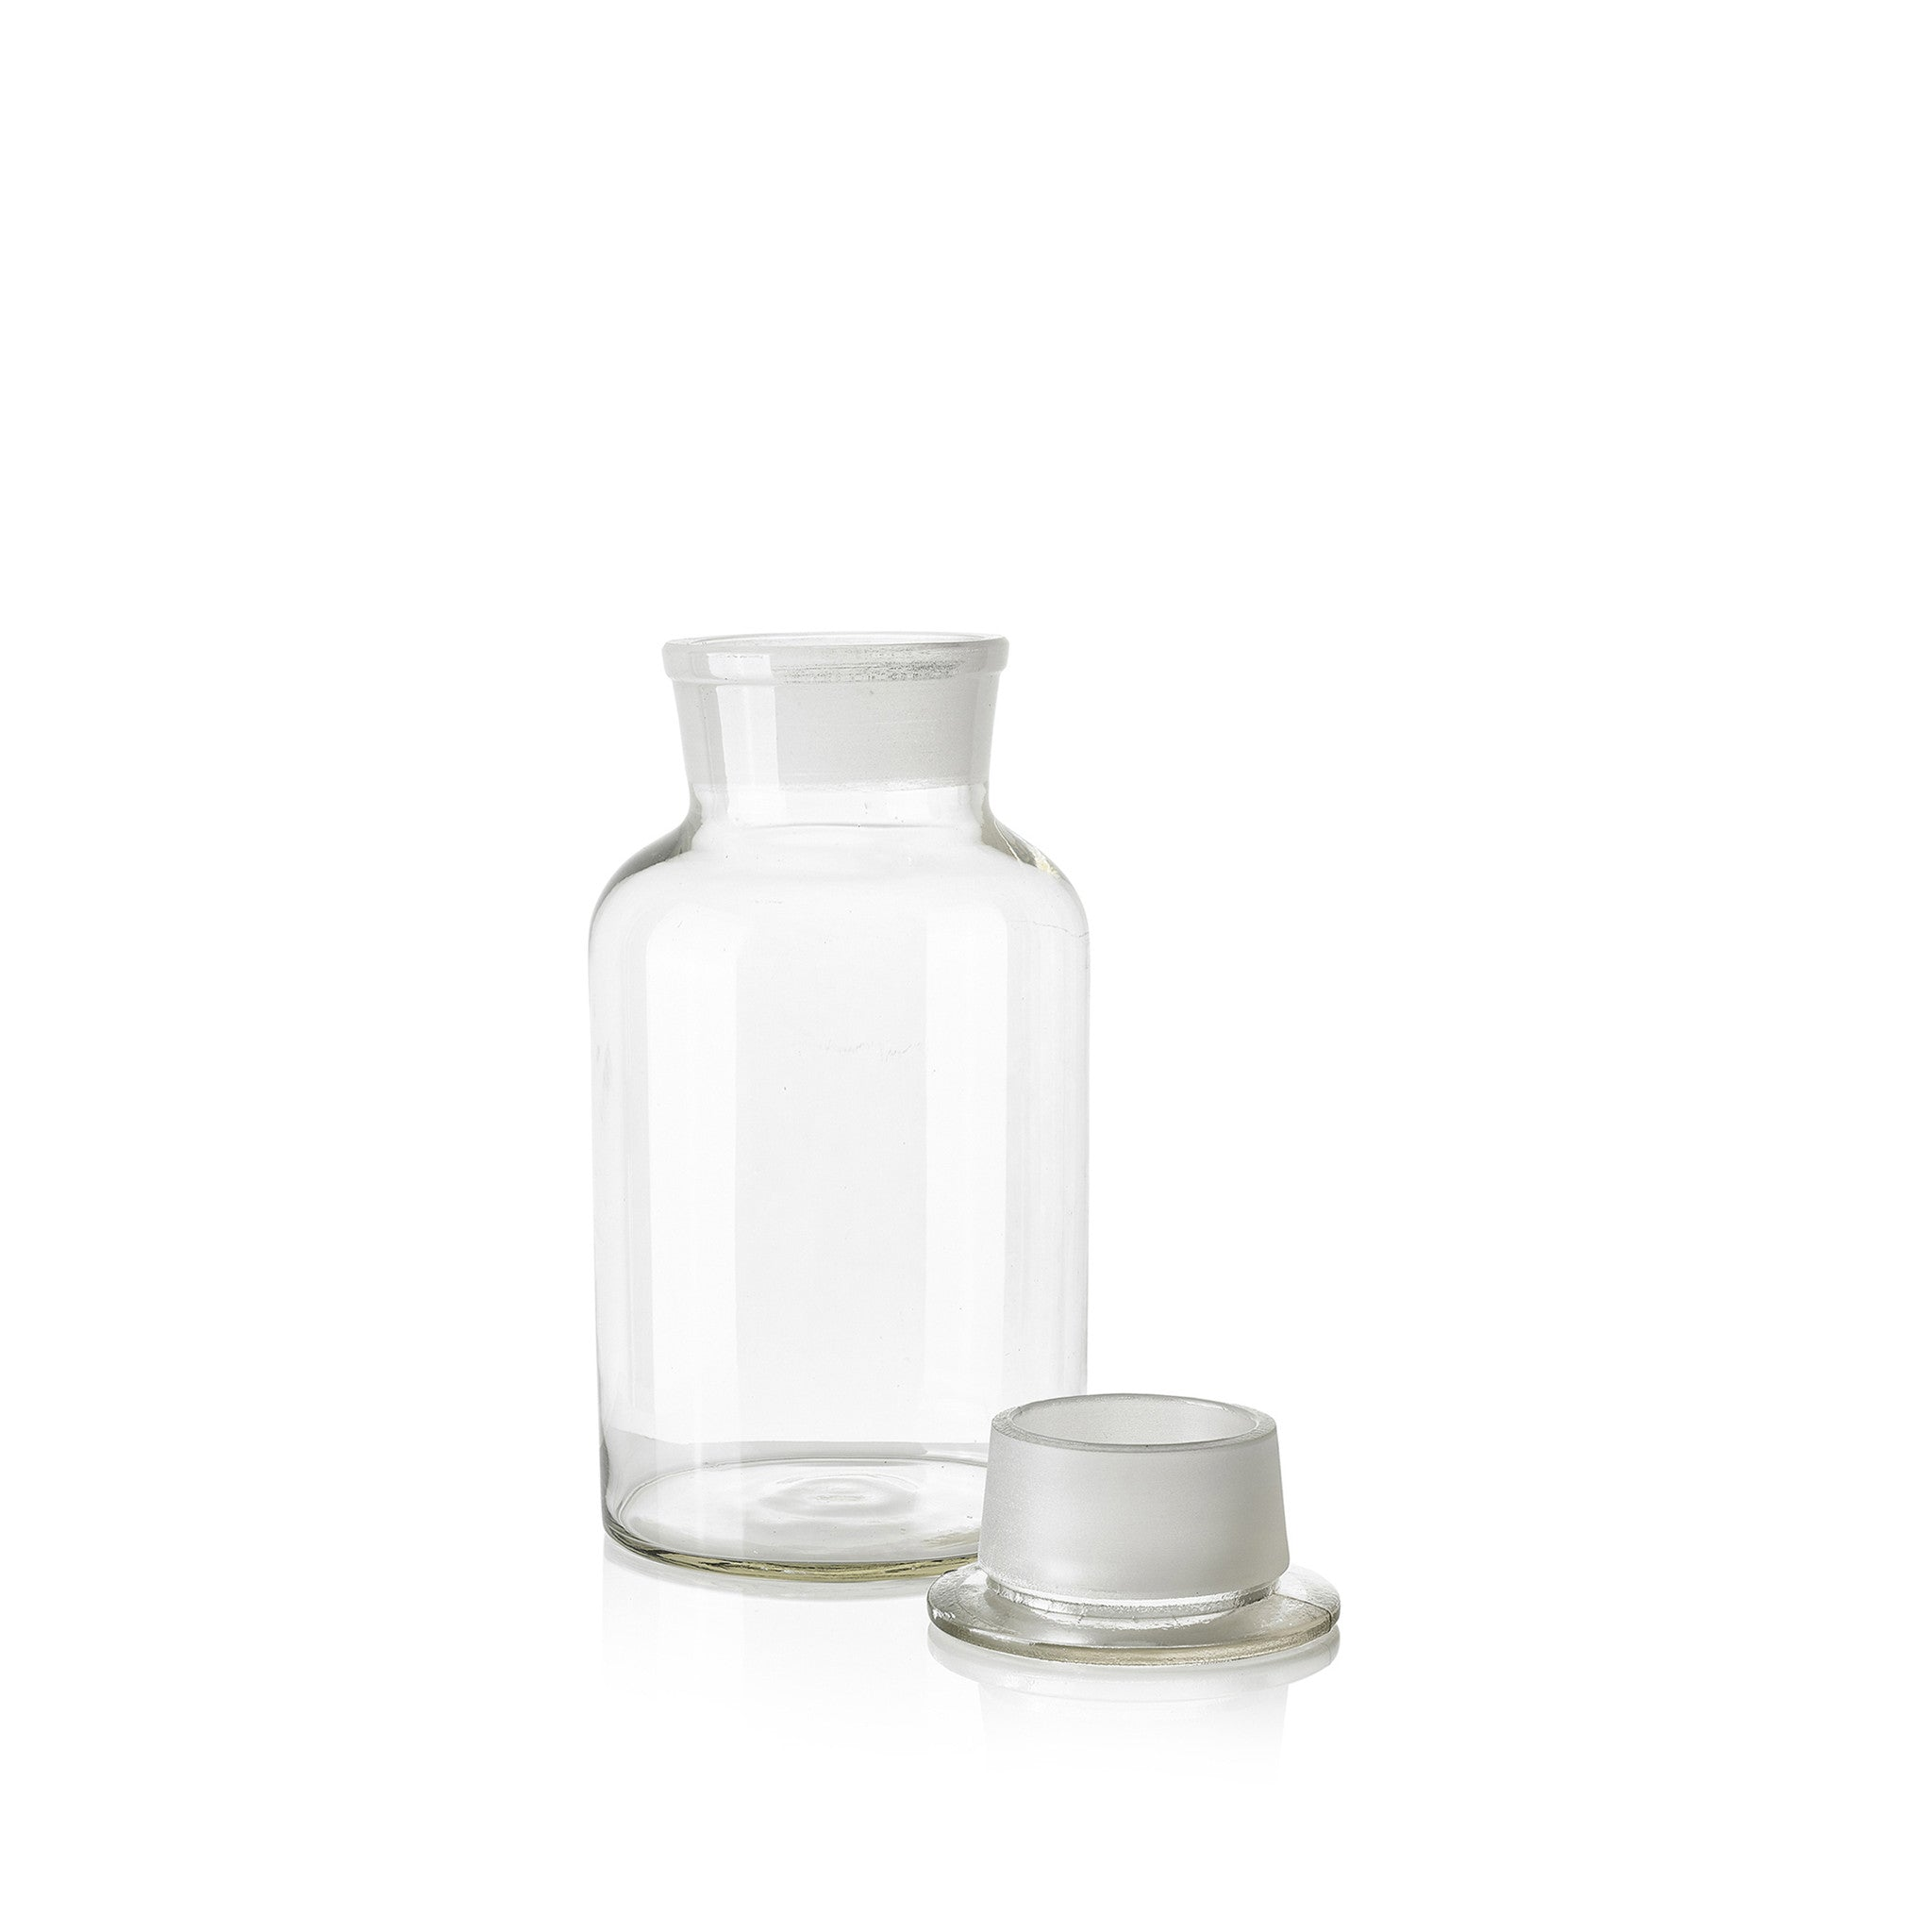 Apothecary Jar with Lid, 35cm